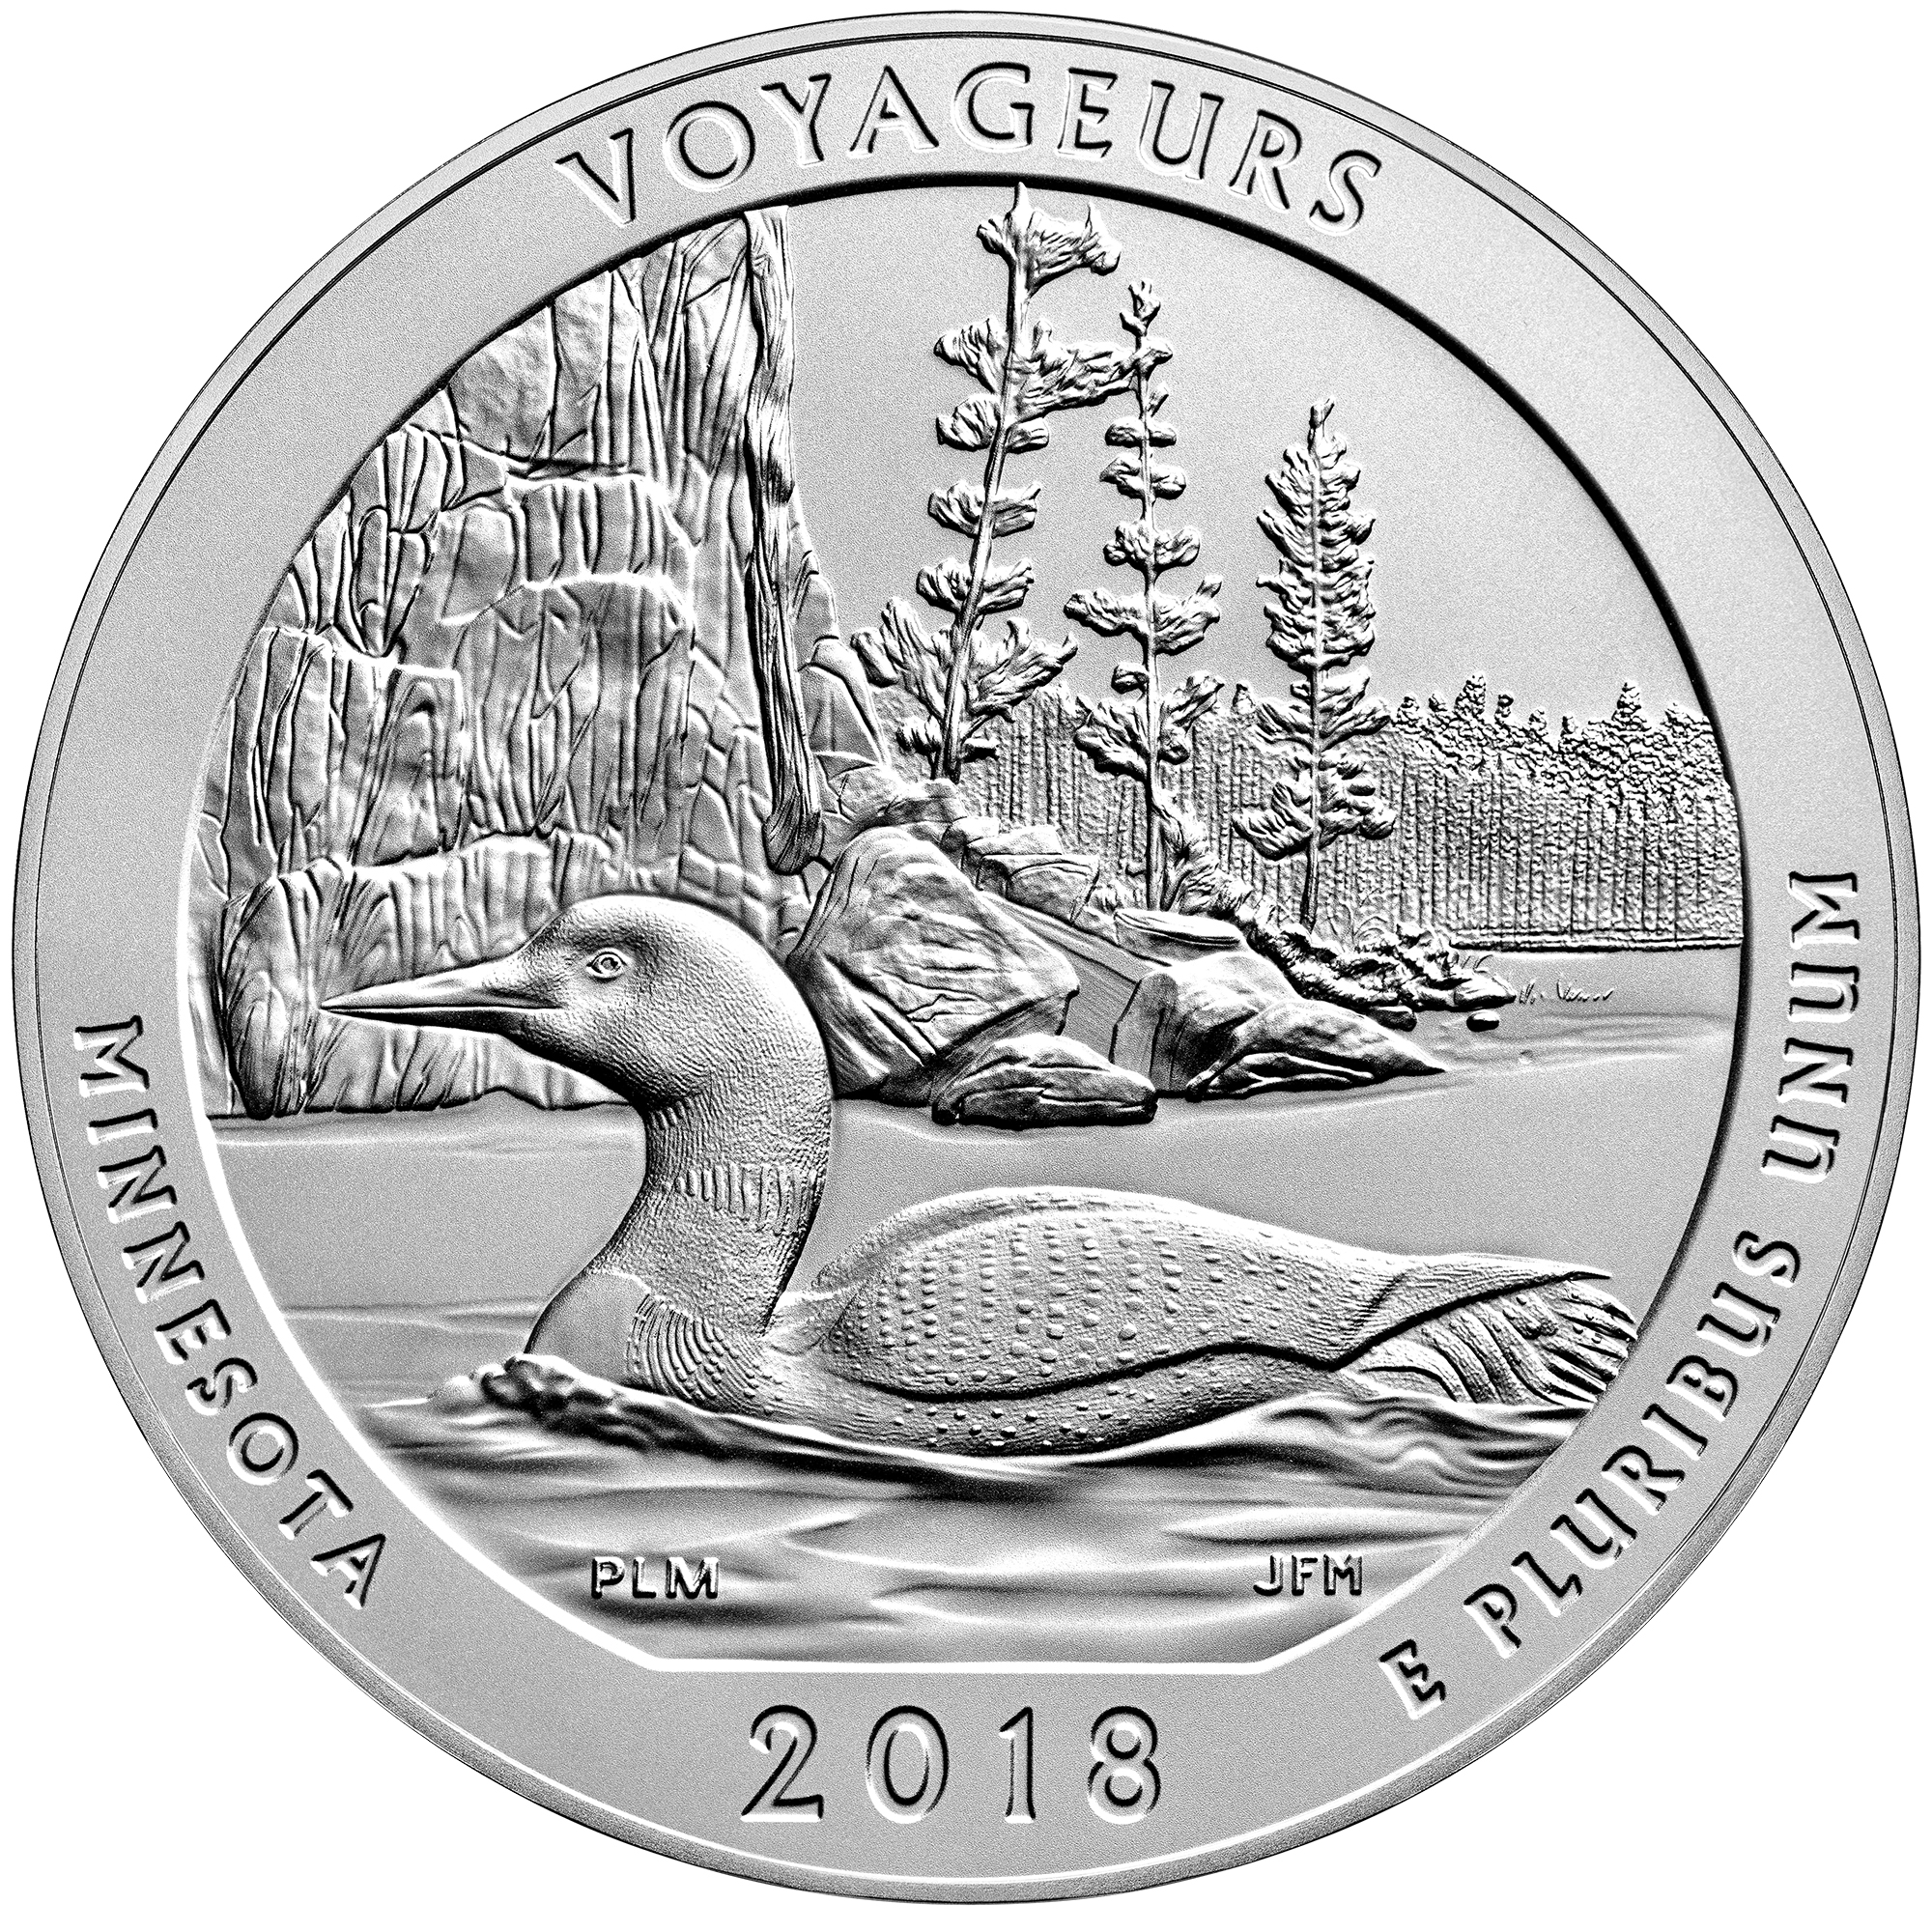 2018 America the Beautiful Quarters Five Ounce Silver Uncirculated Coin Voyageurs Minnesota Reverse